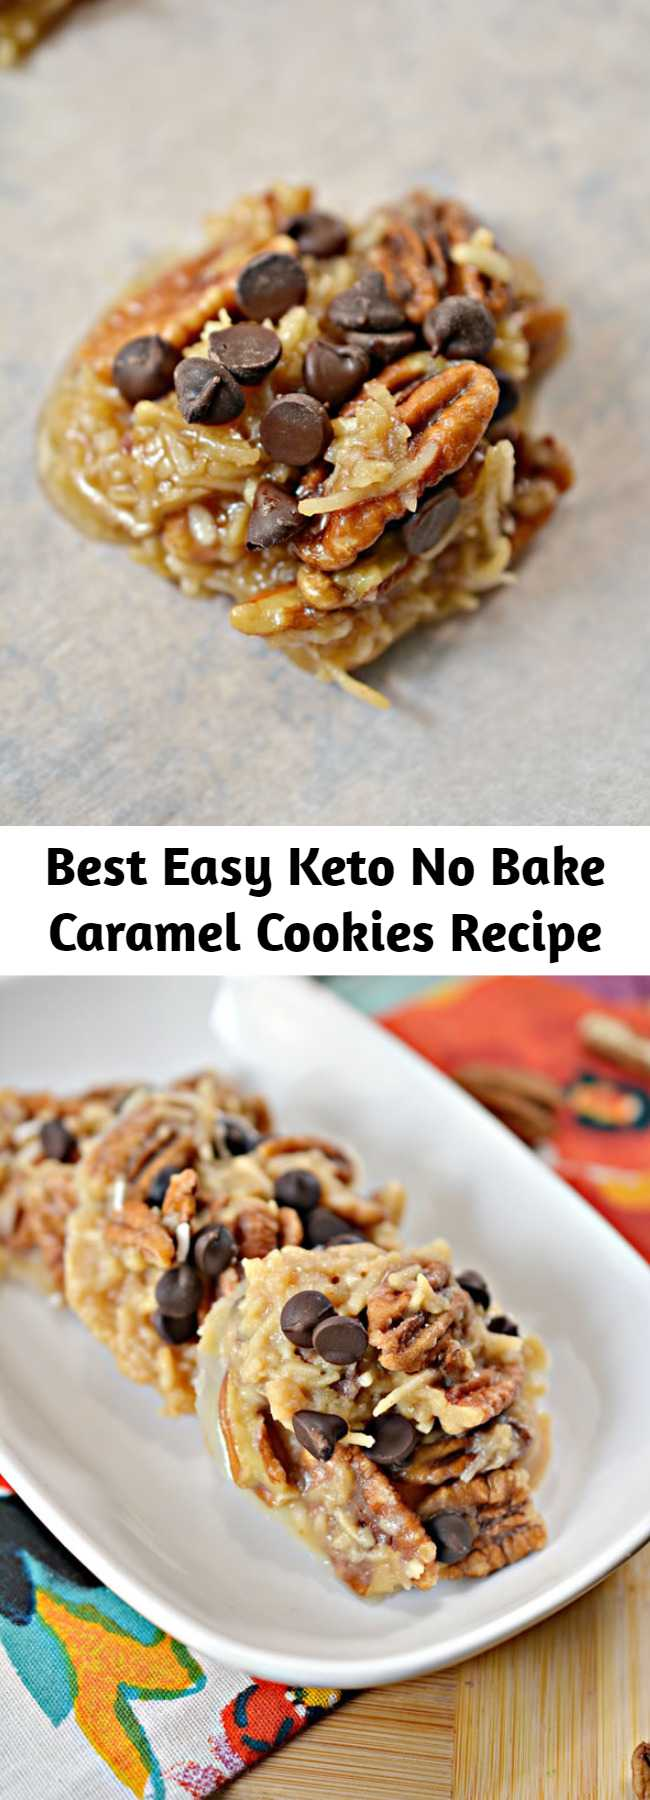 Best Easy Keto No Bake Caramel Cookies Recipe - Tasty keto NO bake cookies you CAN NOT stop eating! Super delicious keto caramel cookies. These low carb cookies are easy to make and super yummy. You can put these cookies together in a 5 minutes. #keto